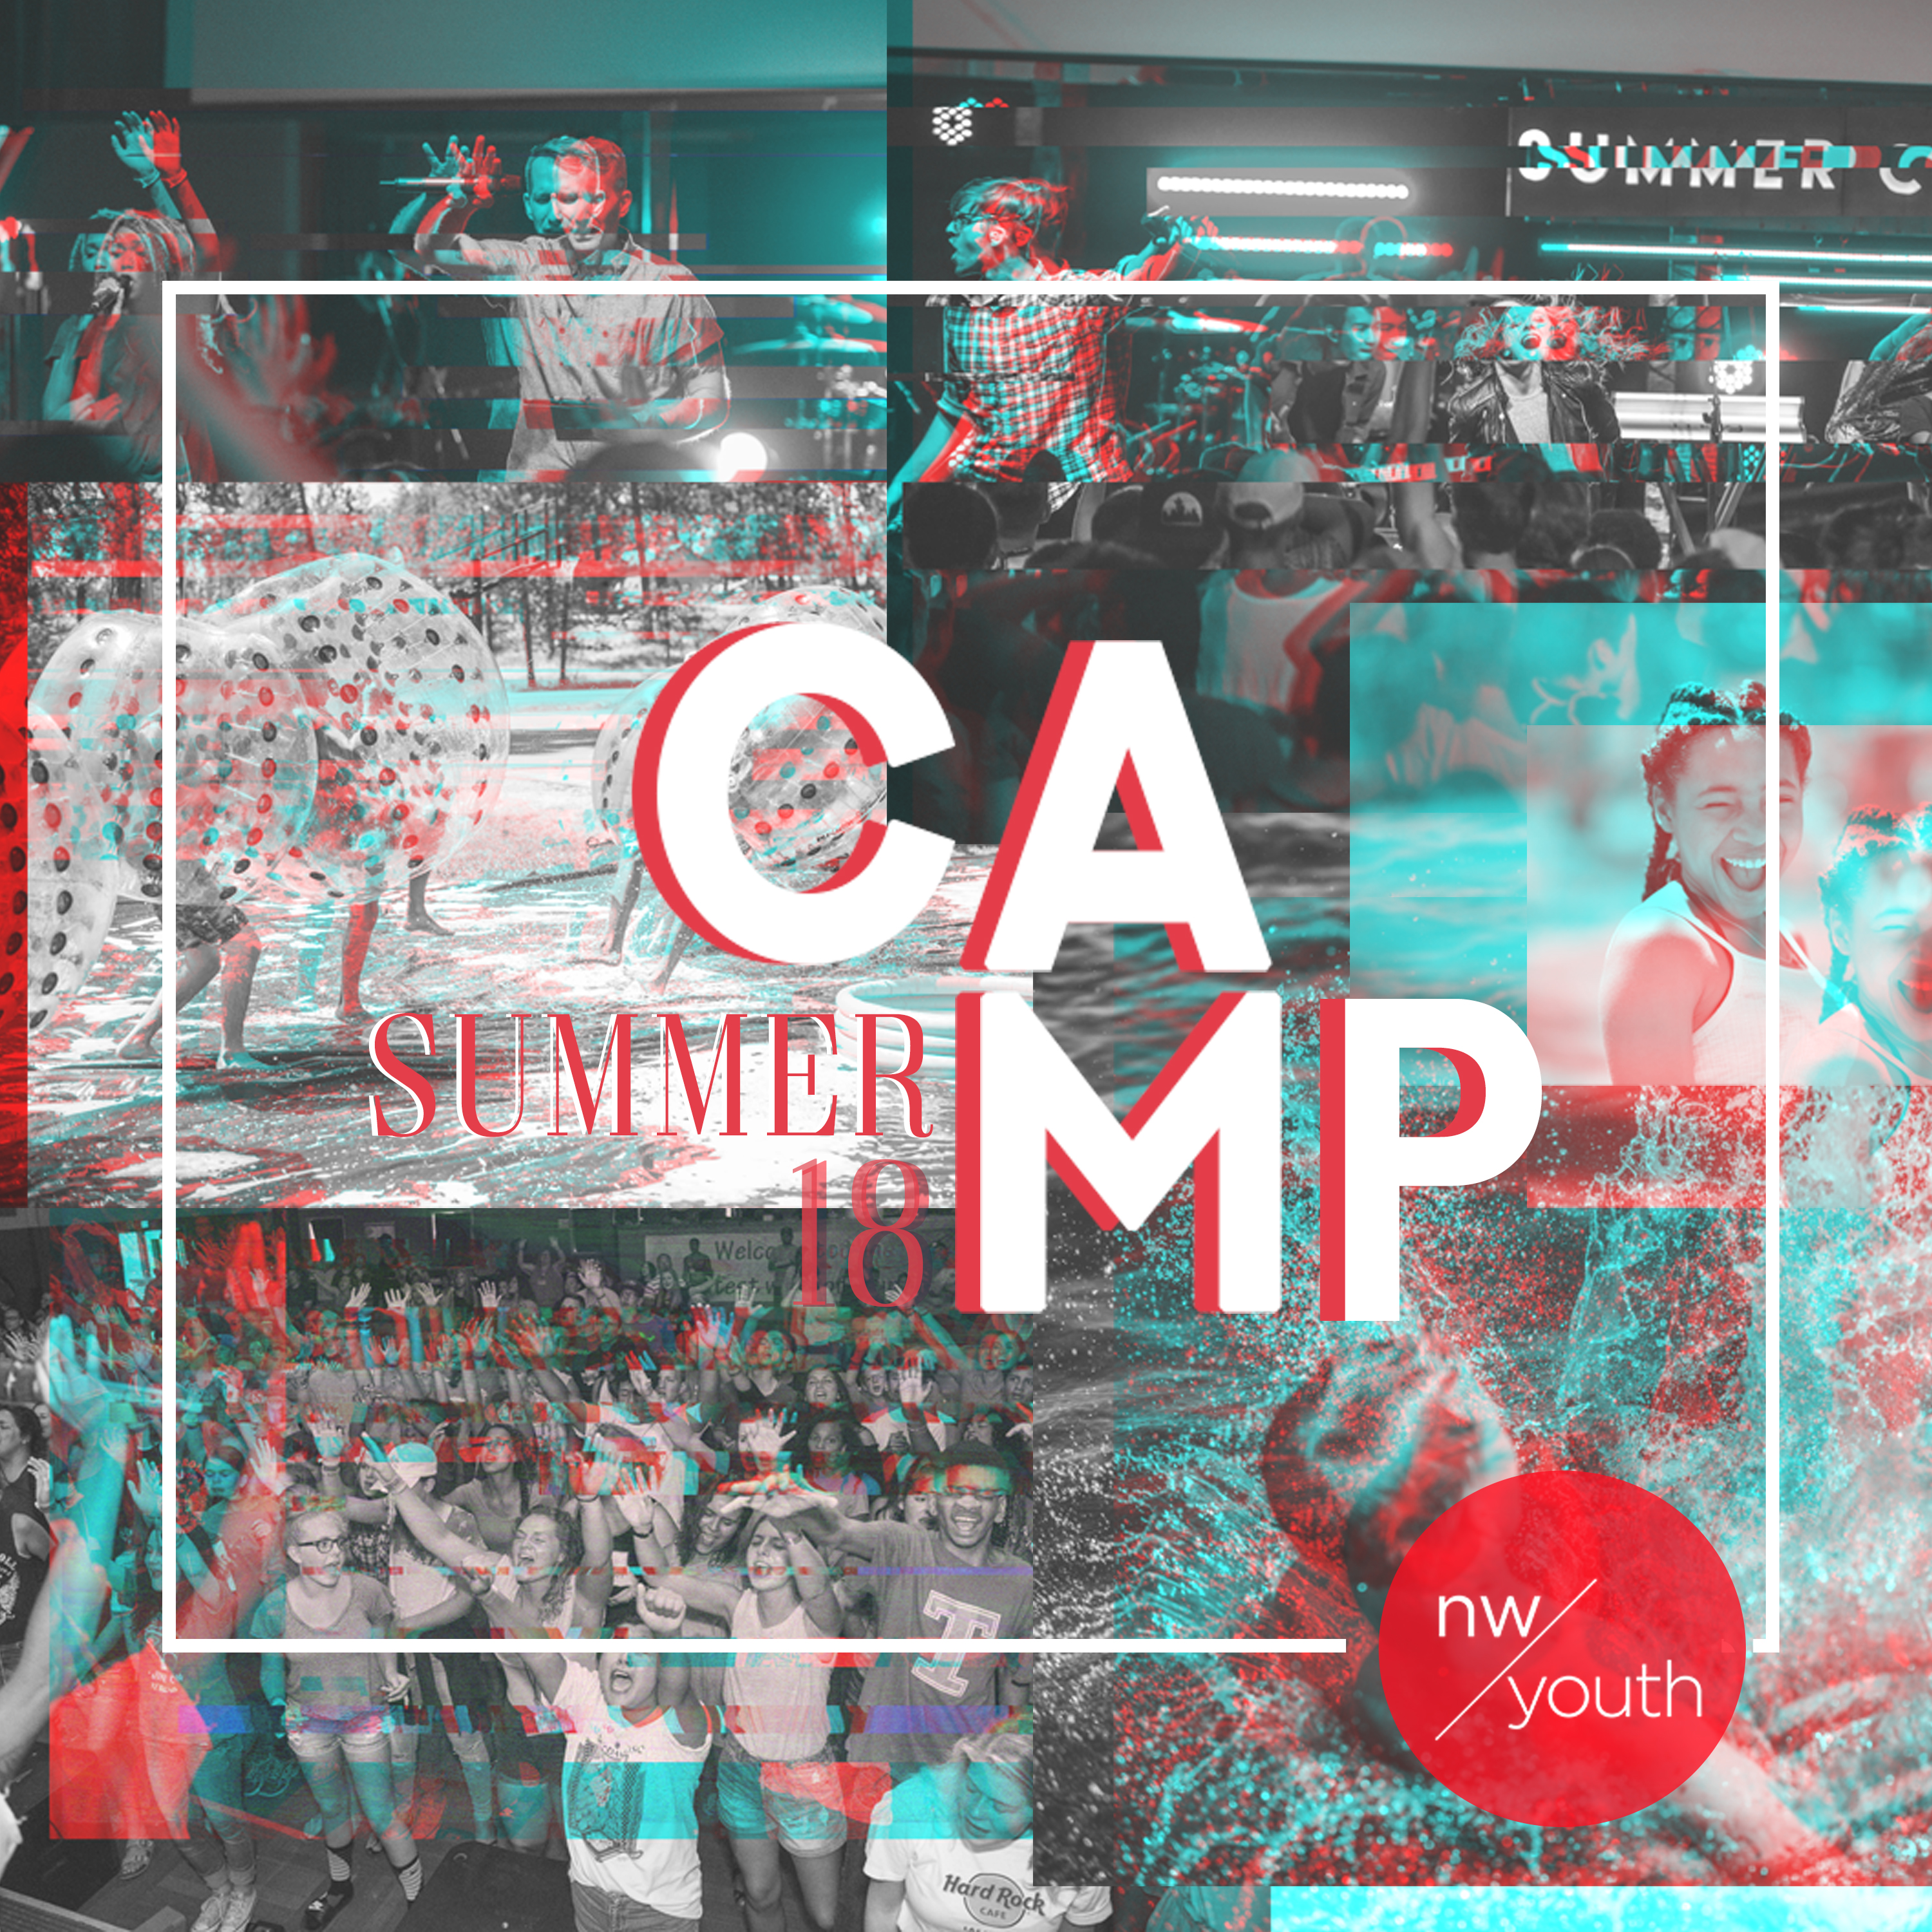 Youth camp insta promo